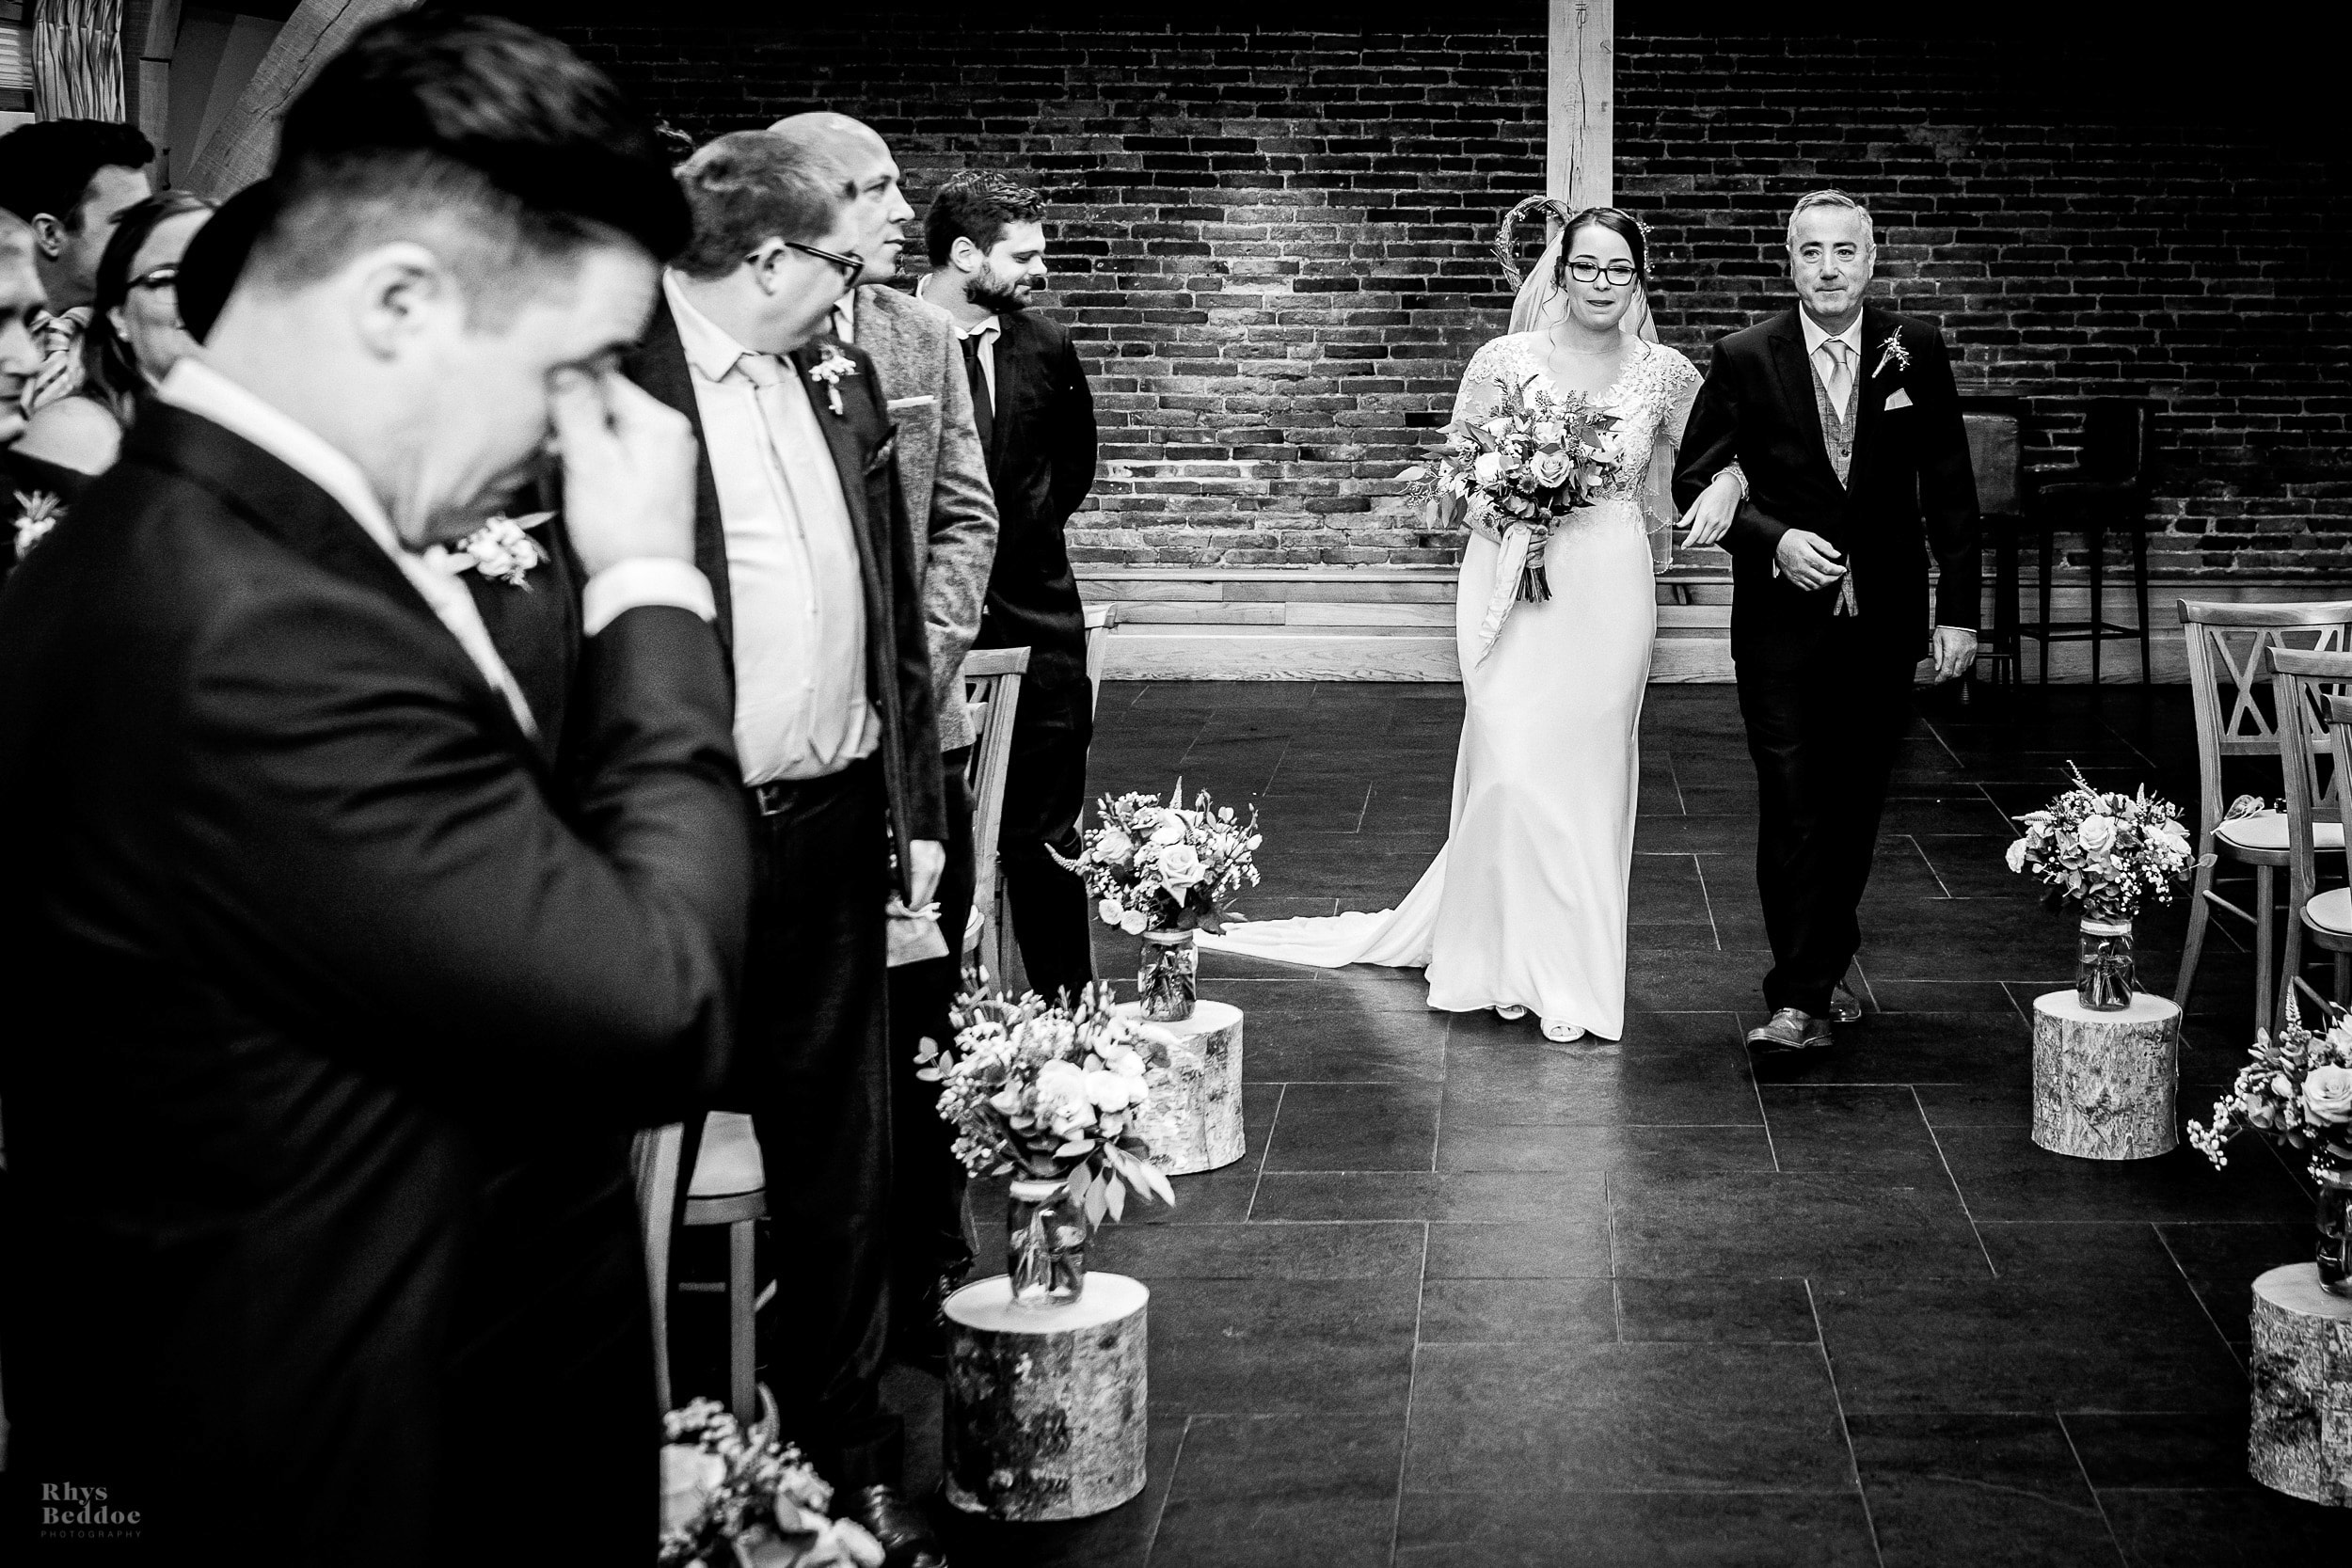 Bride walking down the aisle at Mythe Barn whilst groom wipes tear away from his eye